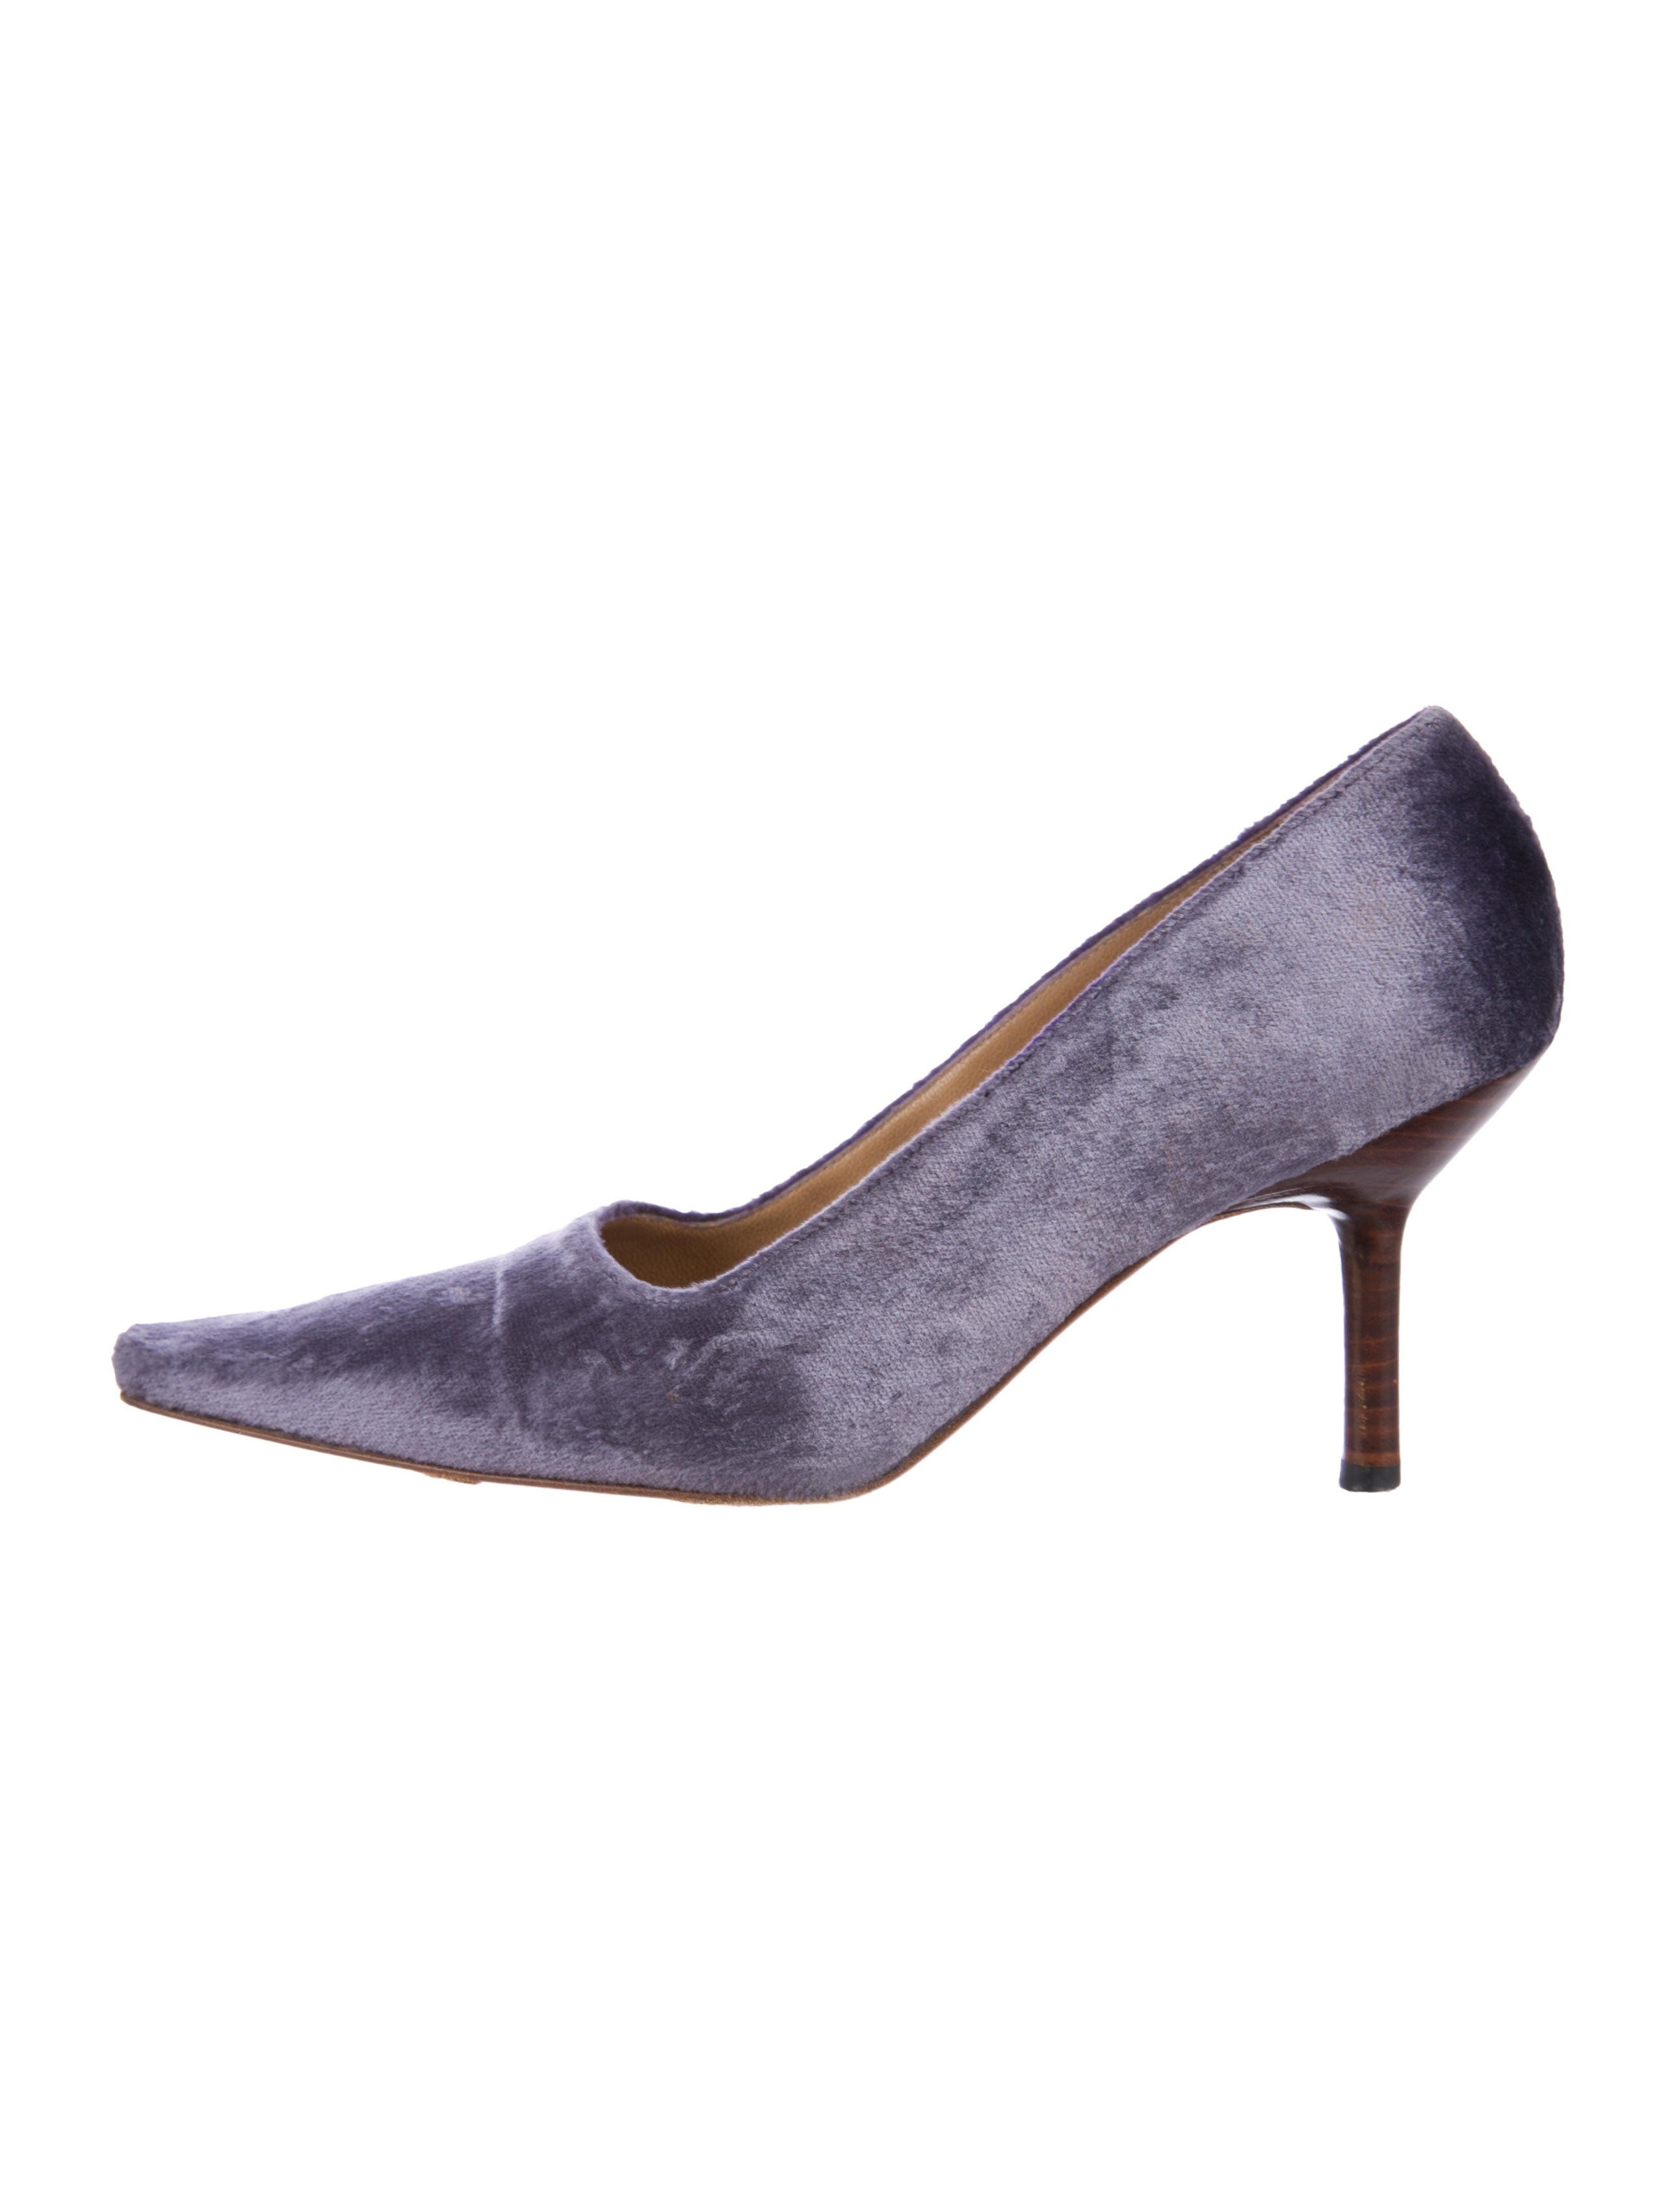 202b1da4a4fa Purple velvet Gucci pointed-toe pumps with tonal stitching and stacked heels .